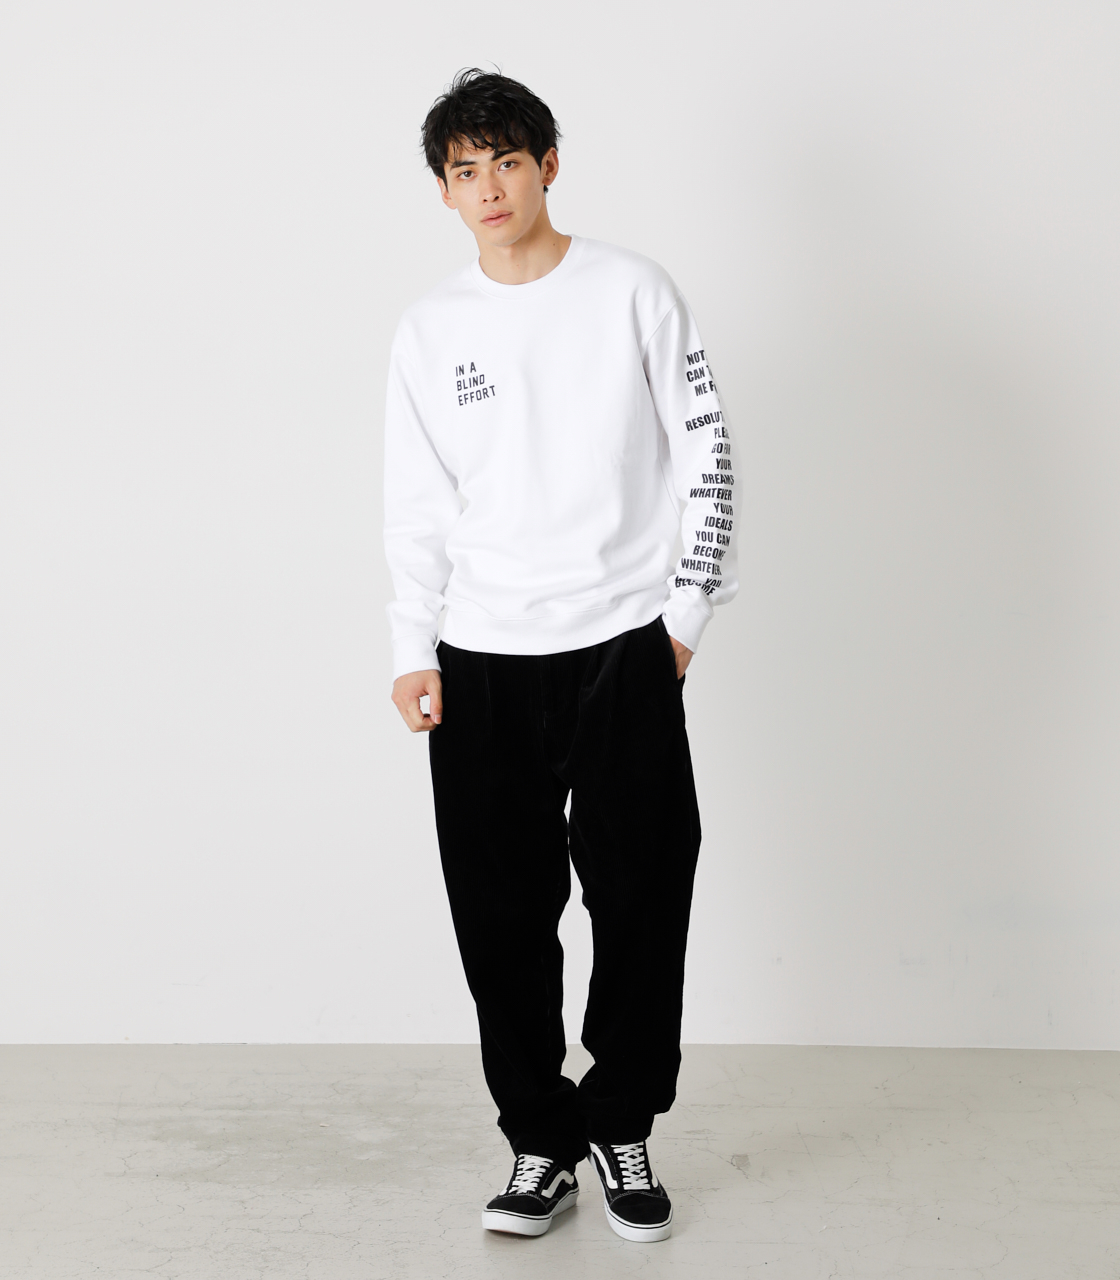 ONE ARM MESSAGE PULLOVER/ワンアームメッセージプルオーバー 詳細画像 WHT 4